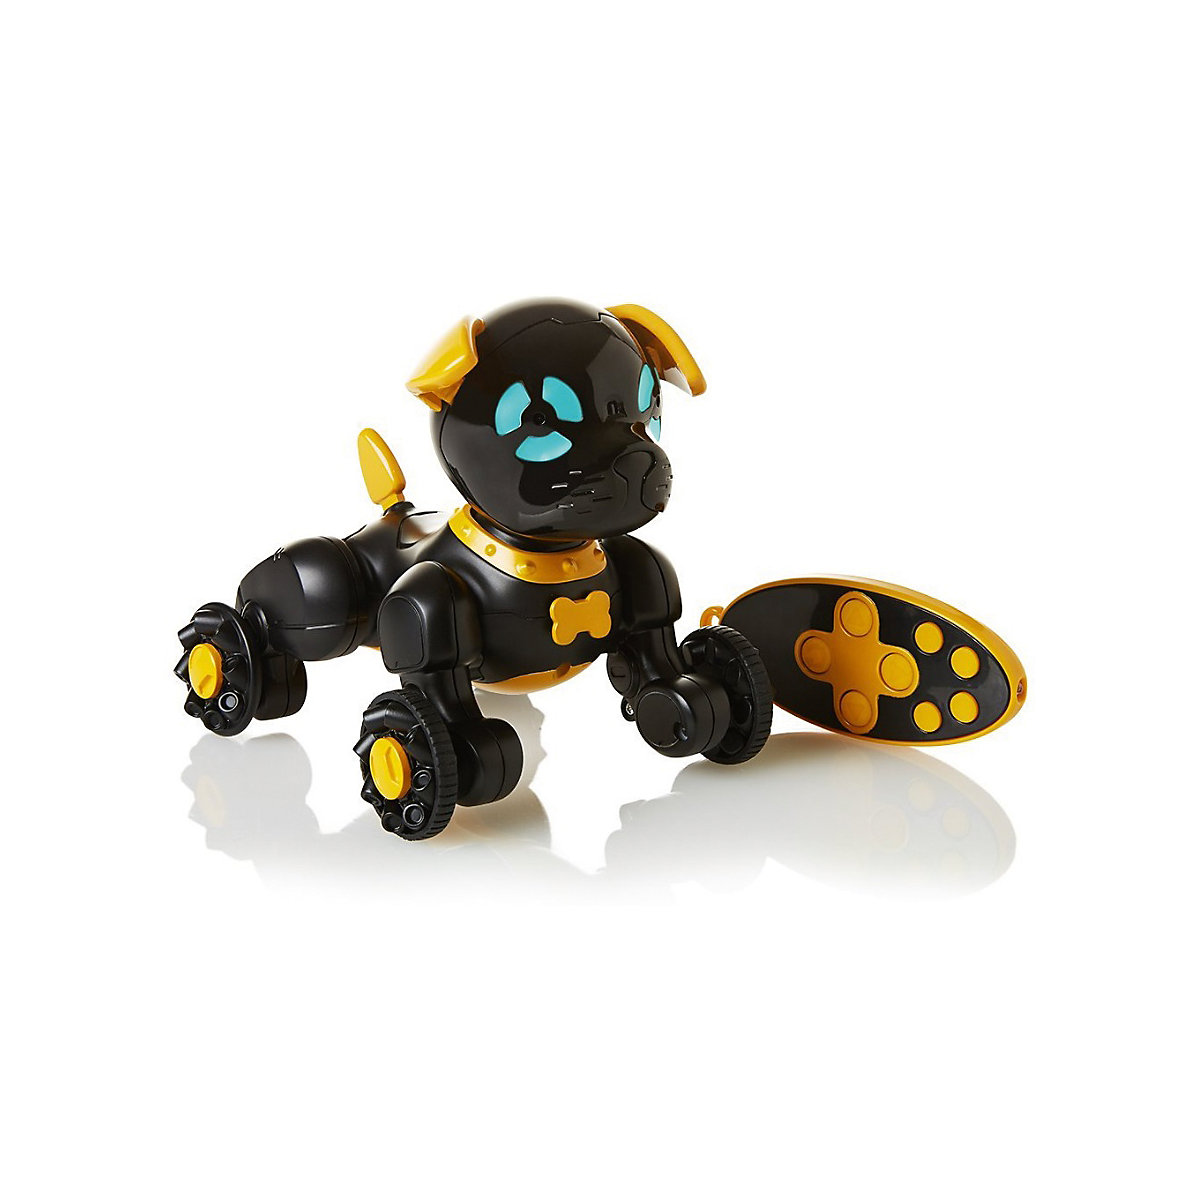 Electronic Pets WowWee 7314004 Tamagochi Robot Toys Interactive Dog Animals Kids MTpromo